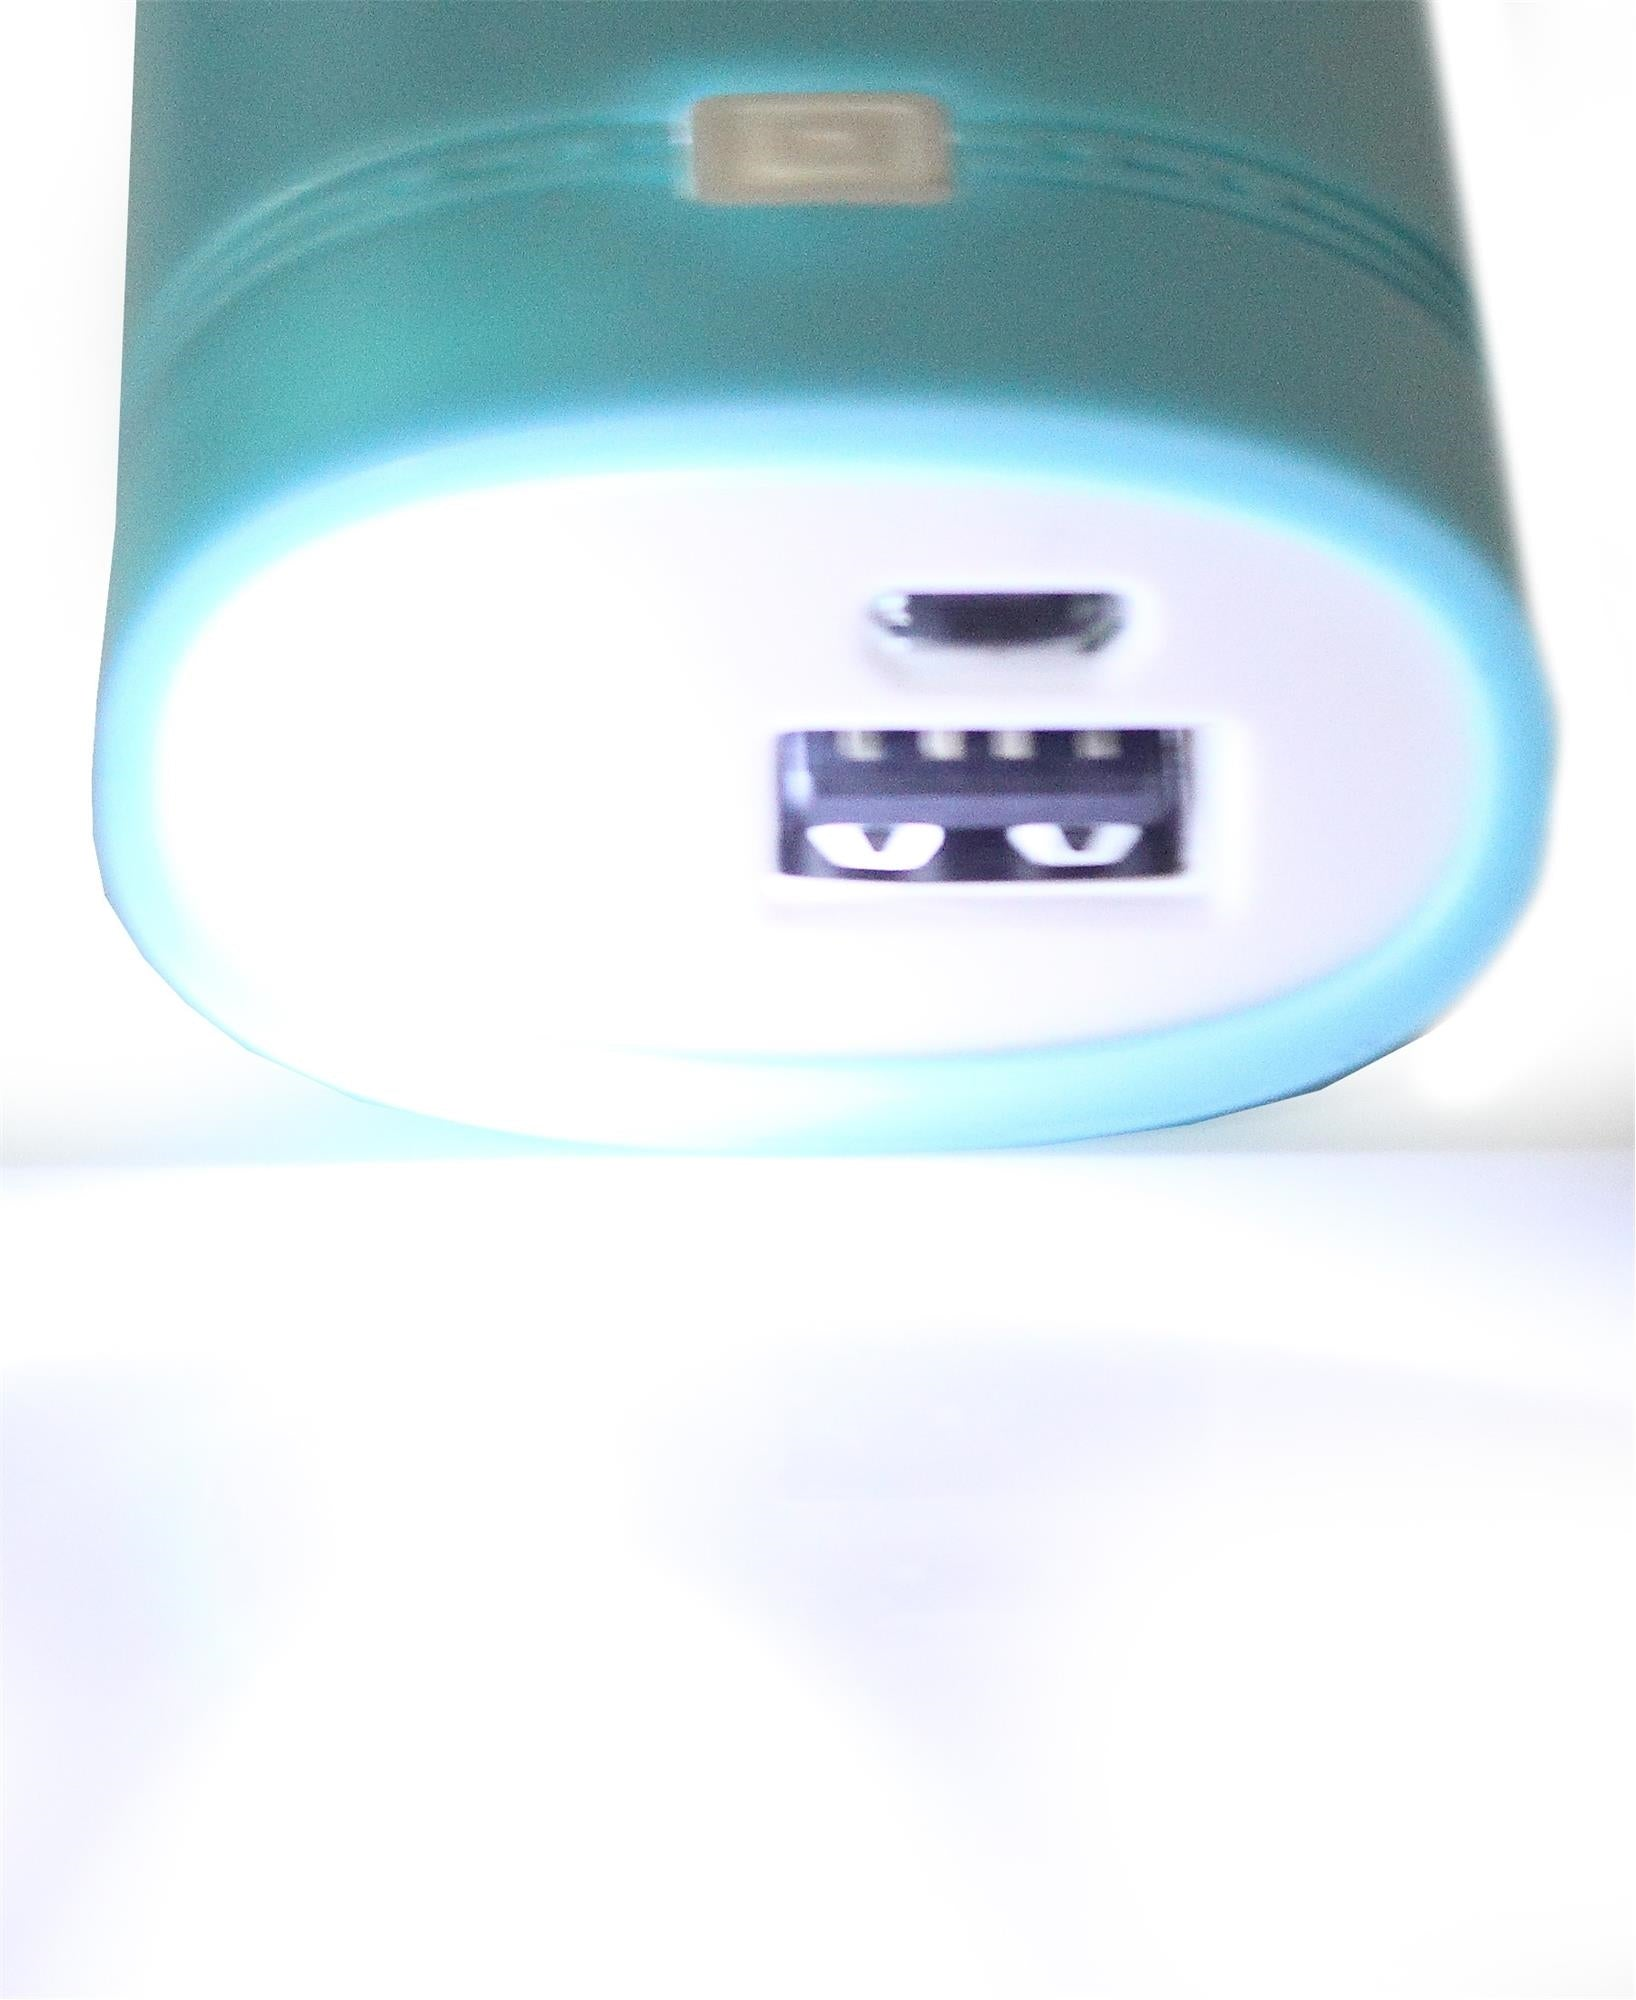 4000mAh Power Bank - Blue